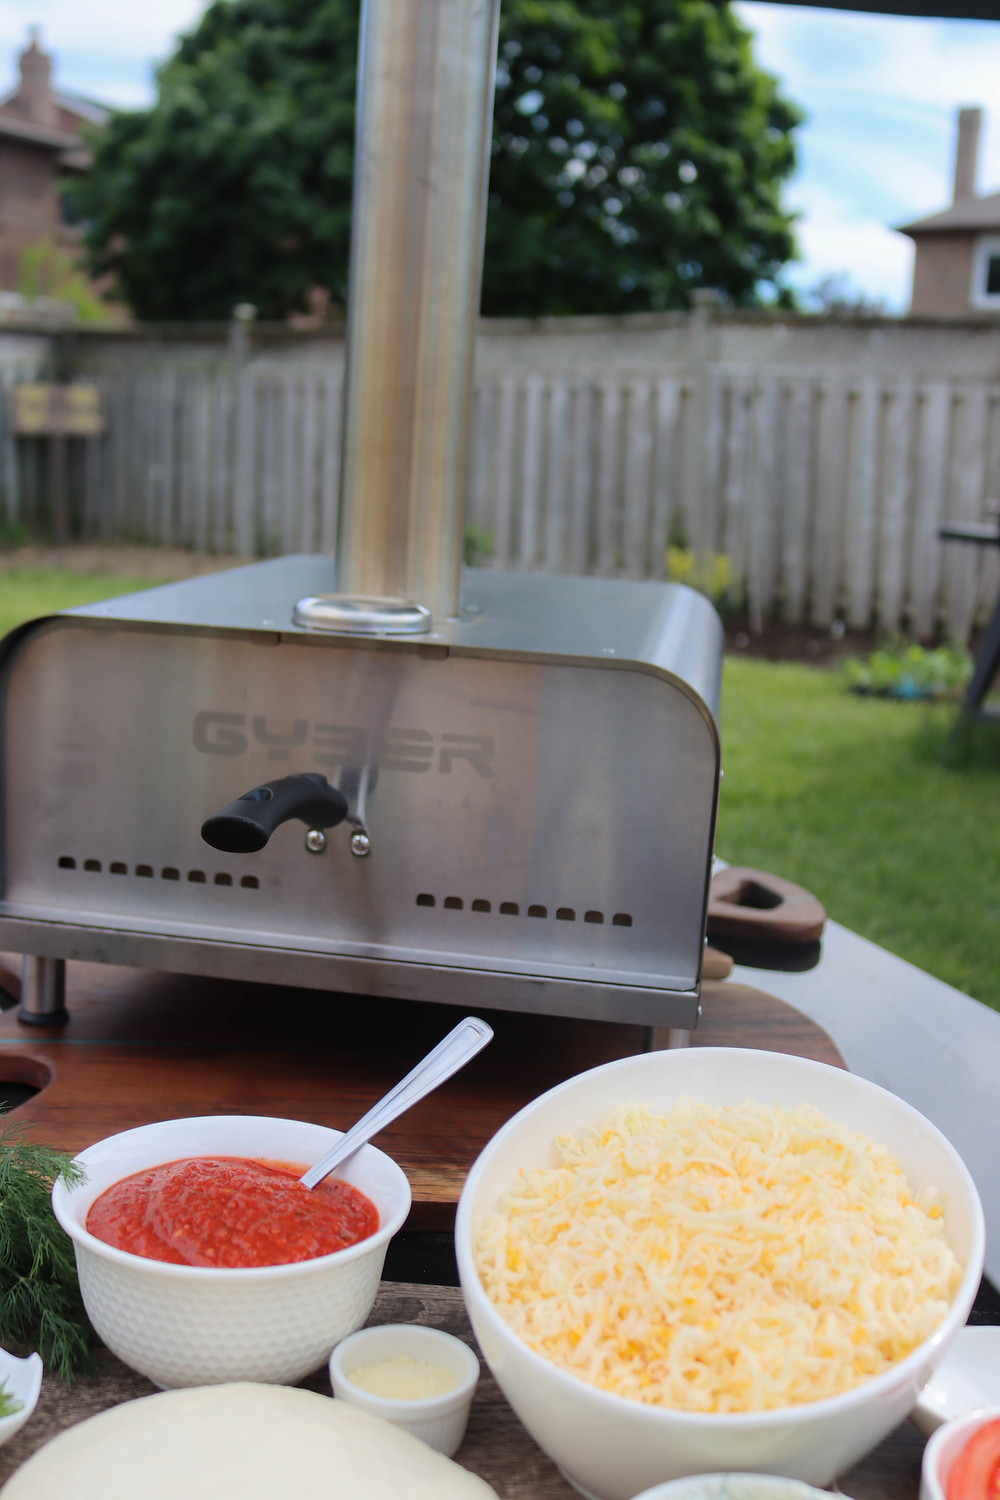 Gyber Pizza Oven. Home Pizza Oven. Outdoor Pizza Oven